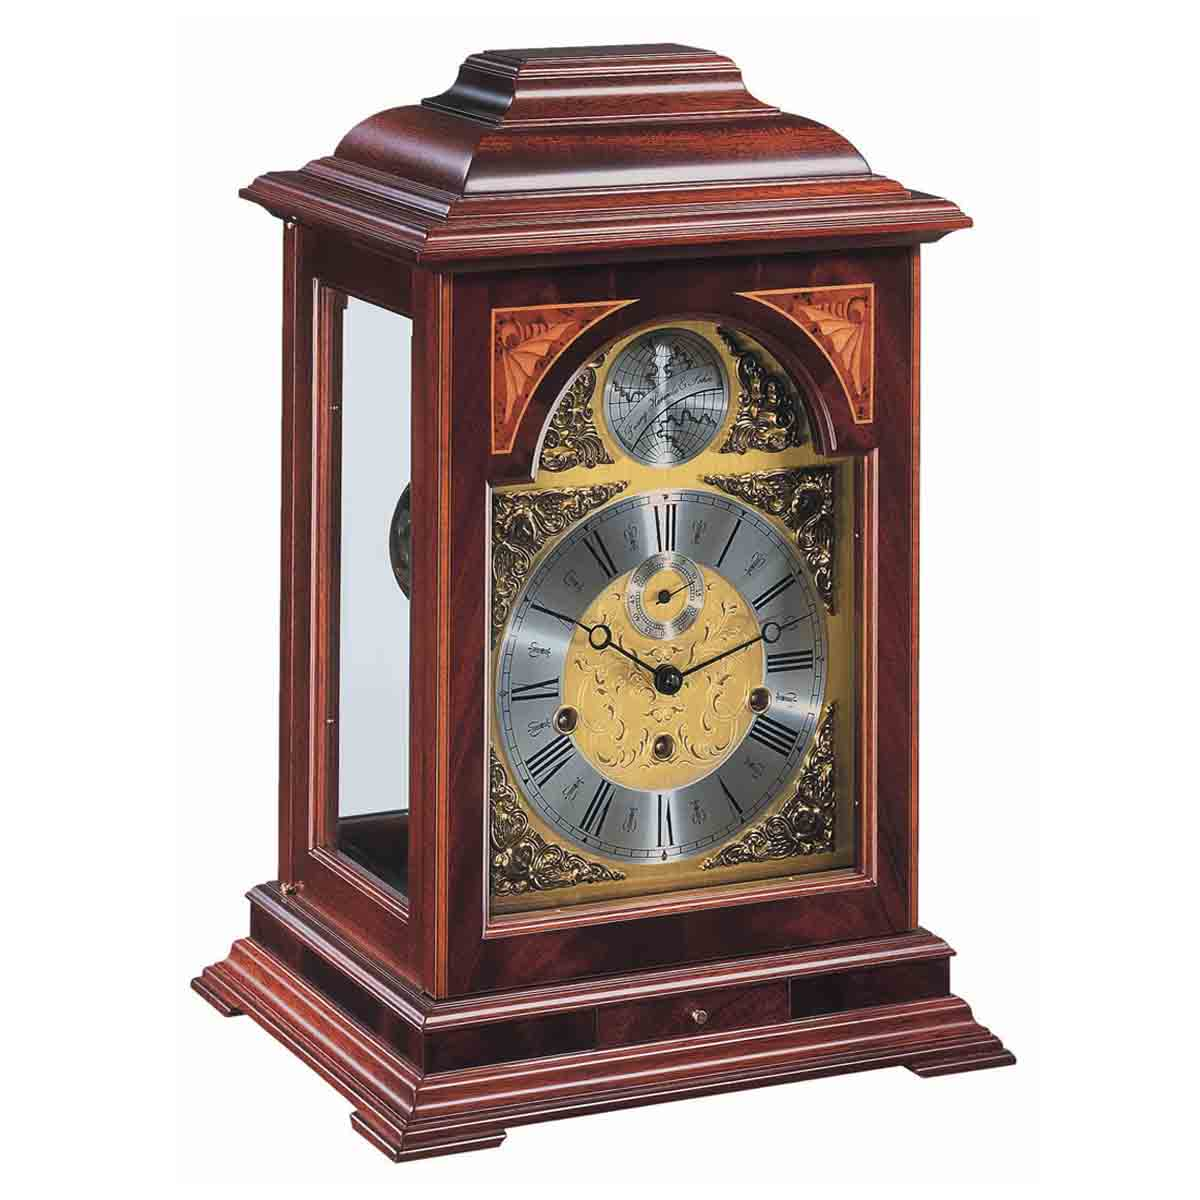 CORNELL 22848 070352 Mantel Table Clock